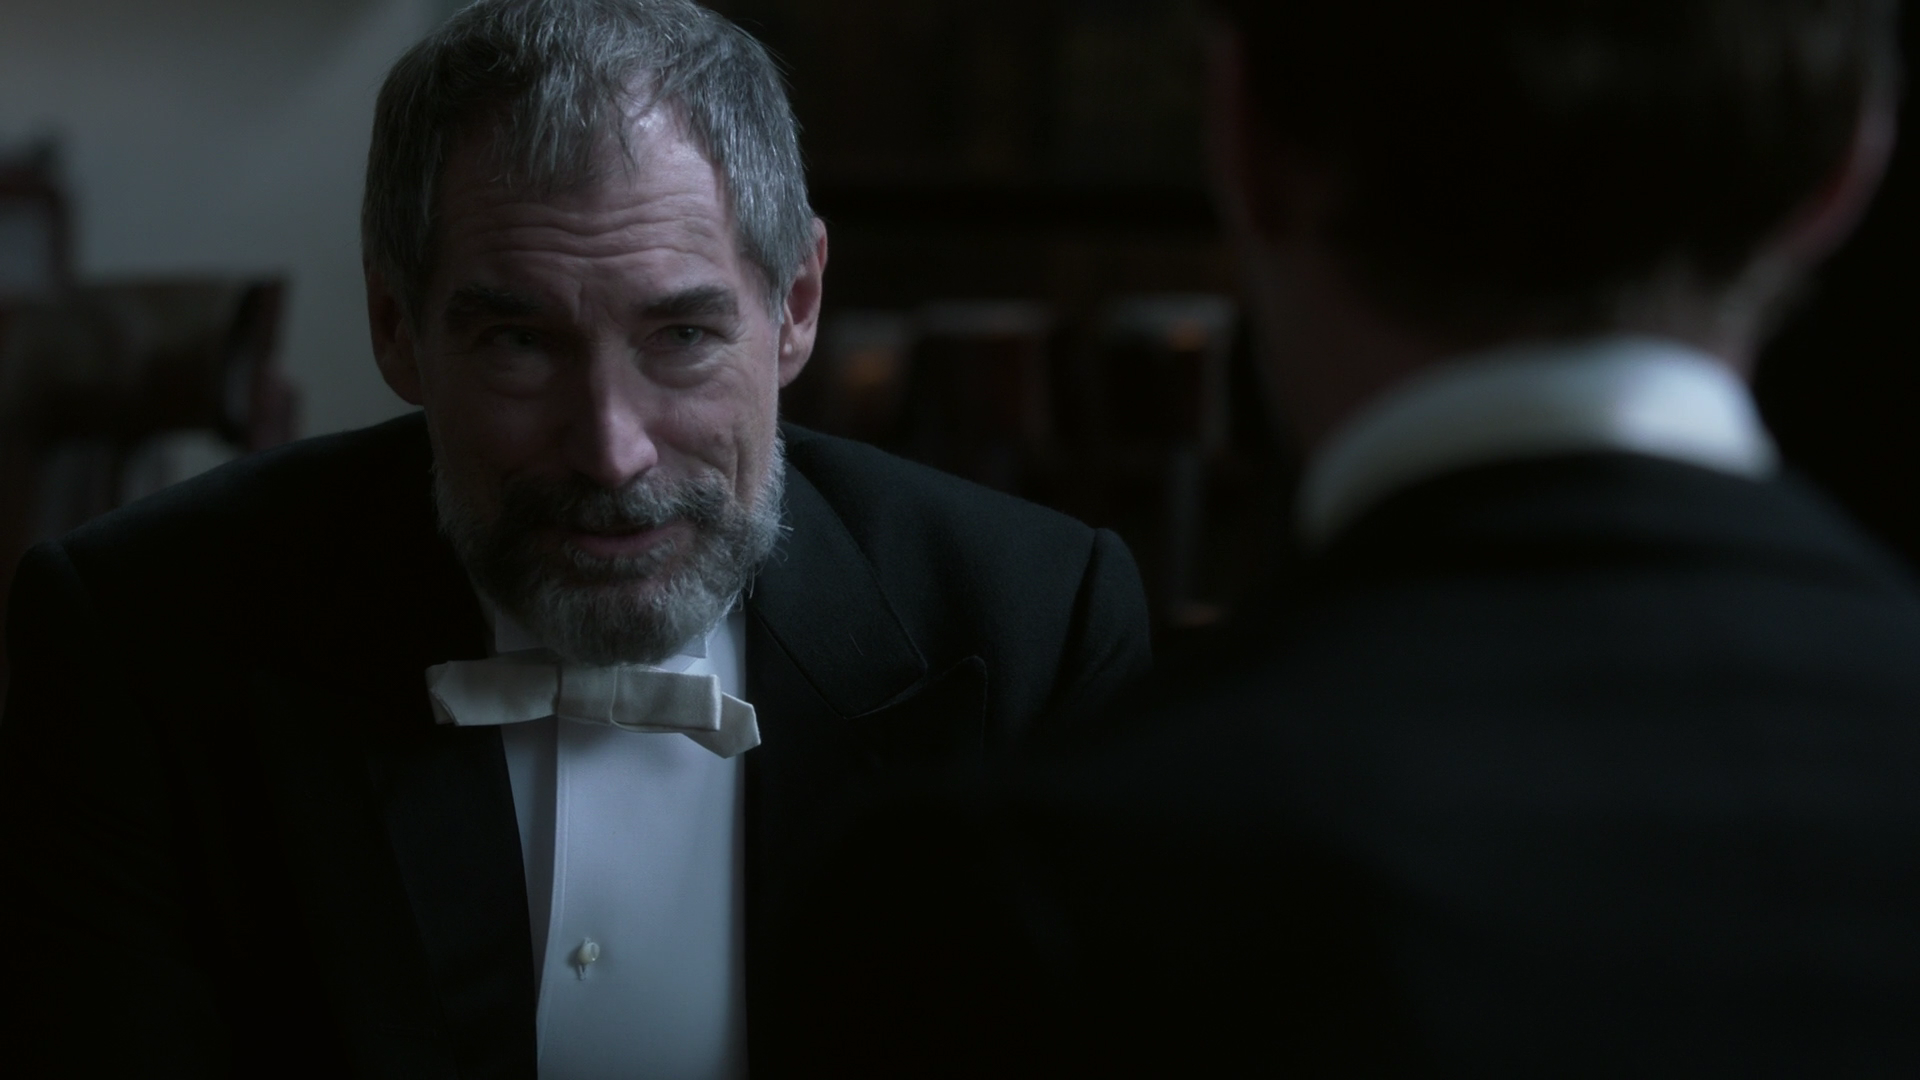 penny.dreadful.s01e01.1080p.bluray.x264-rovers.mkv_002146022.png